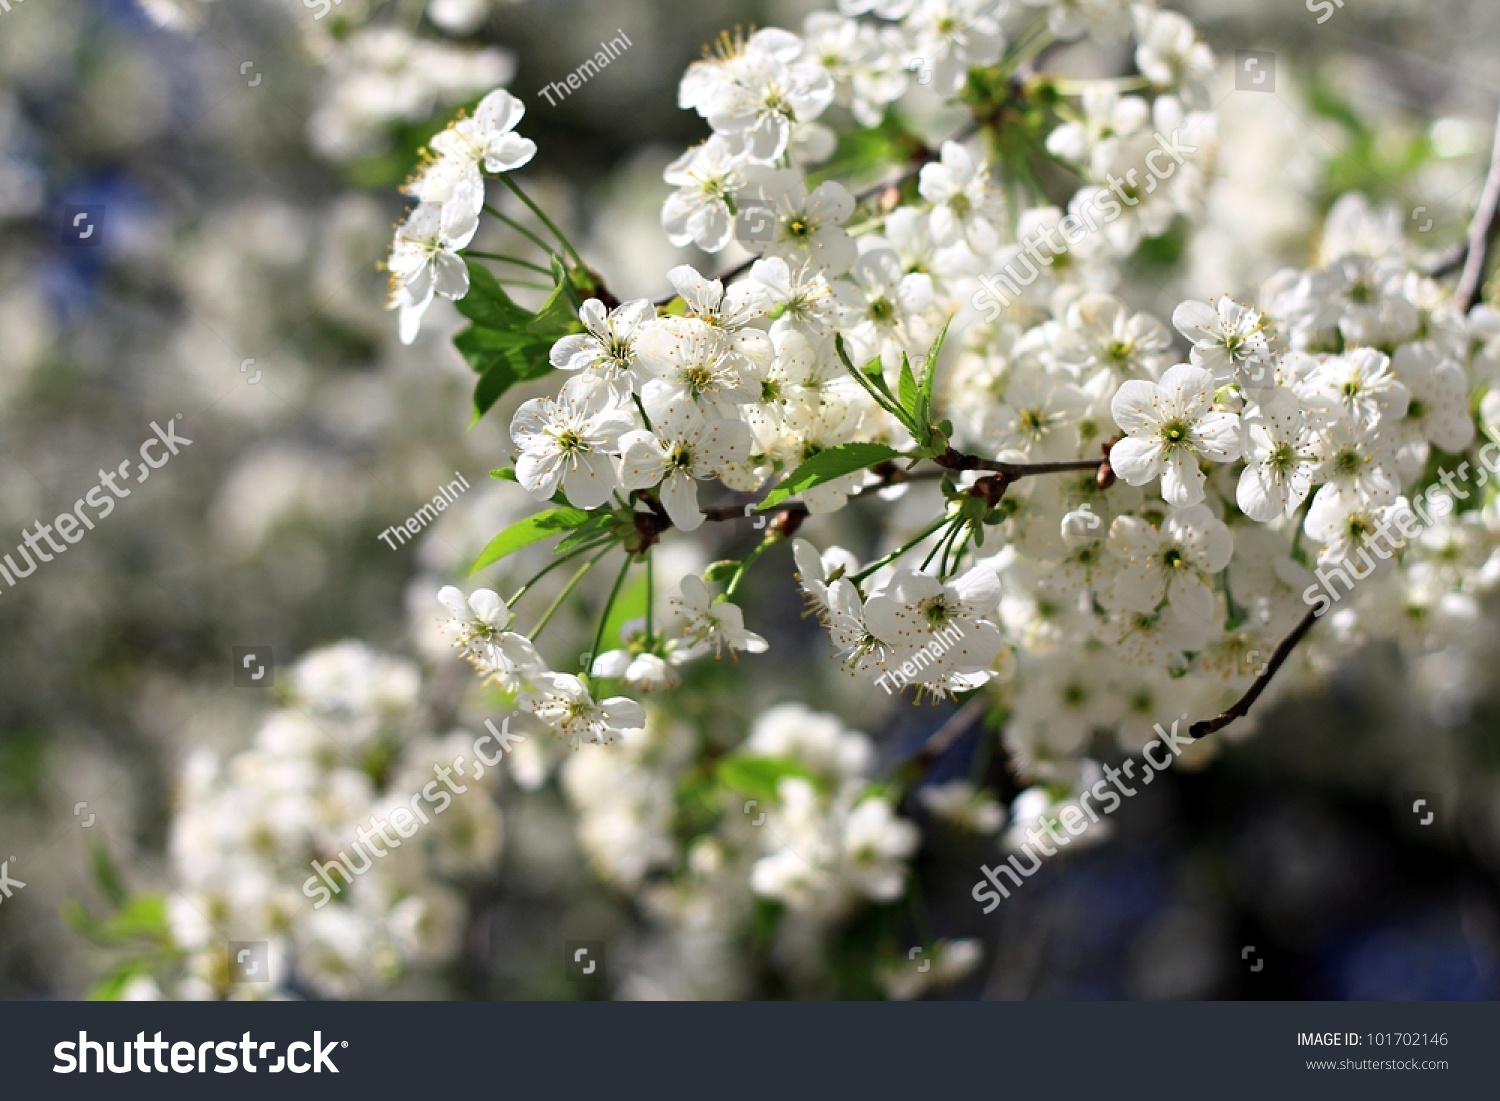 Sunny day and plum tree with white spring blossoms over blurred sunny day and plum tree with white spring blossoms over blurred nature background ez canvas mightylinksfo